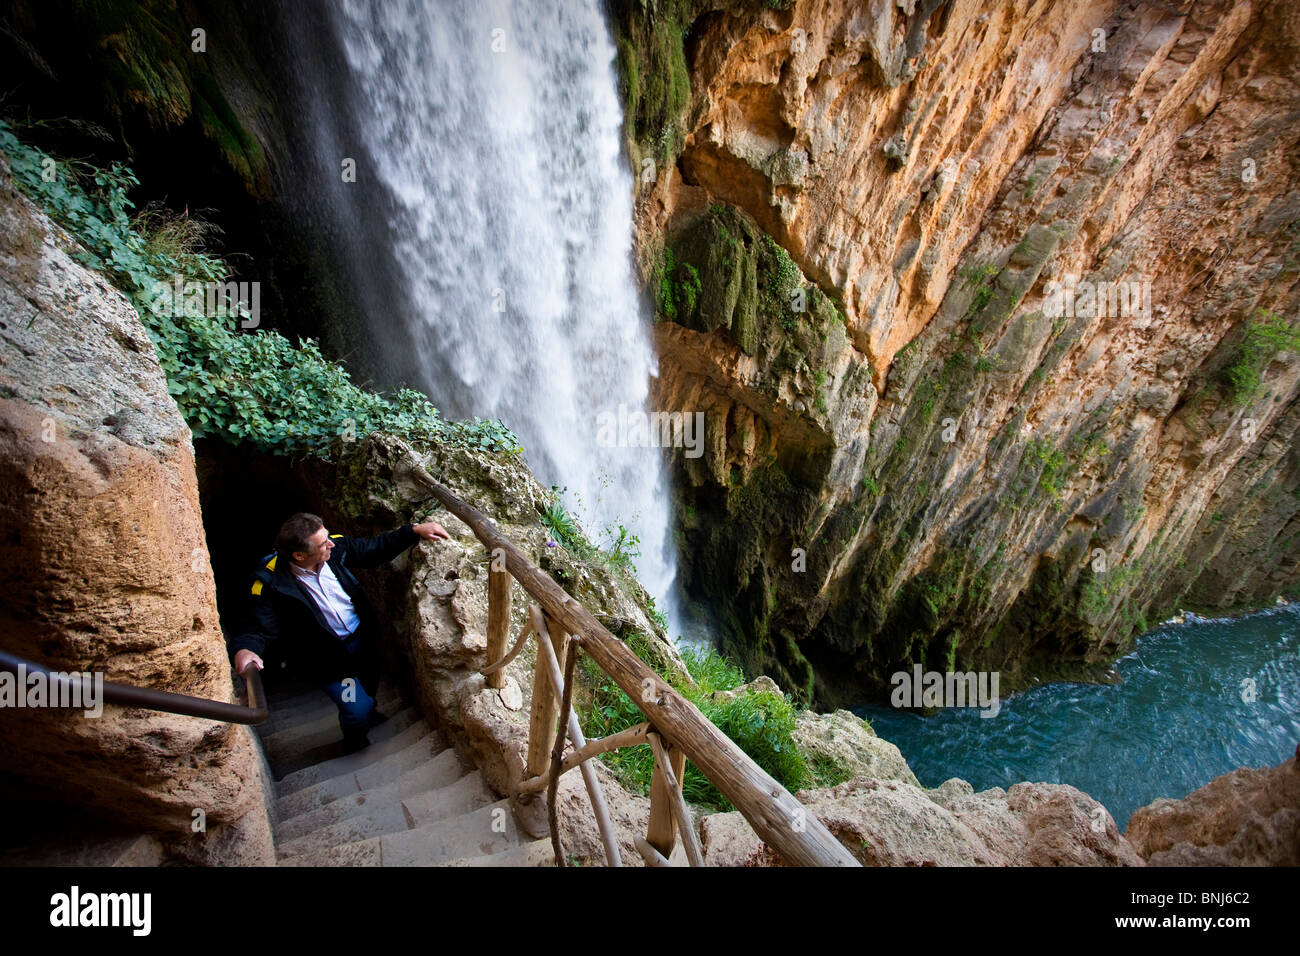 Spain Aragon Region Area Zaragoza Province Monasterio De Piedra Park Stock Photo Alamy